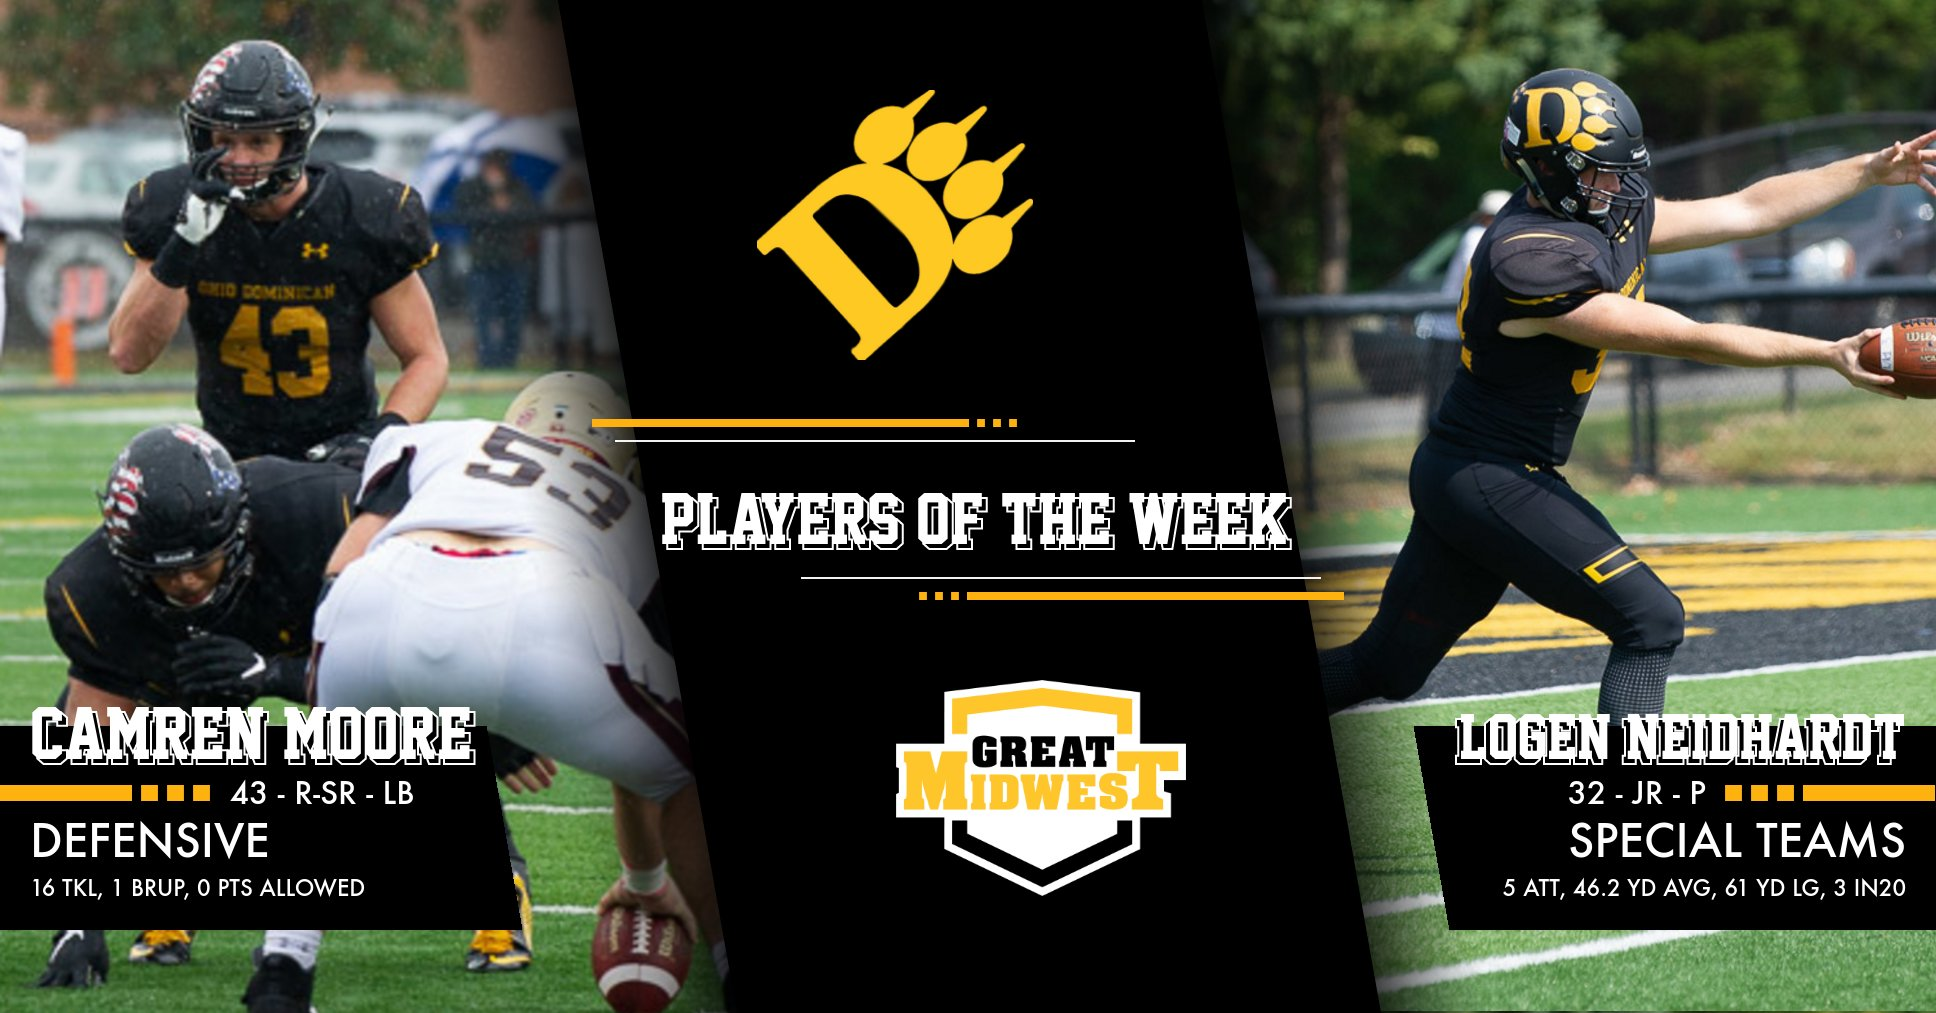 Moore, Neidhardt Named G-MAC Defensive and Special Teams Players of the Week